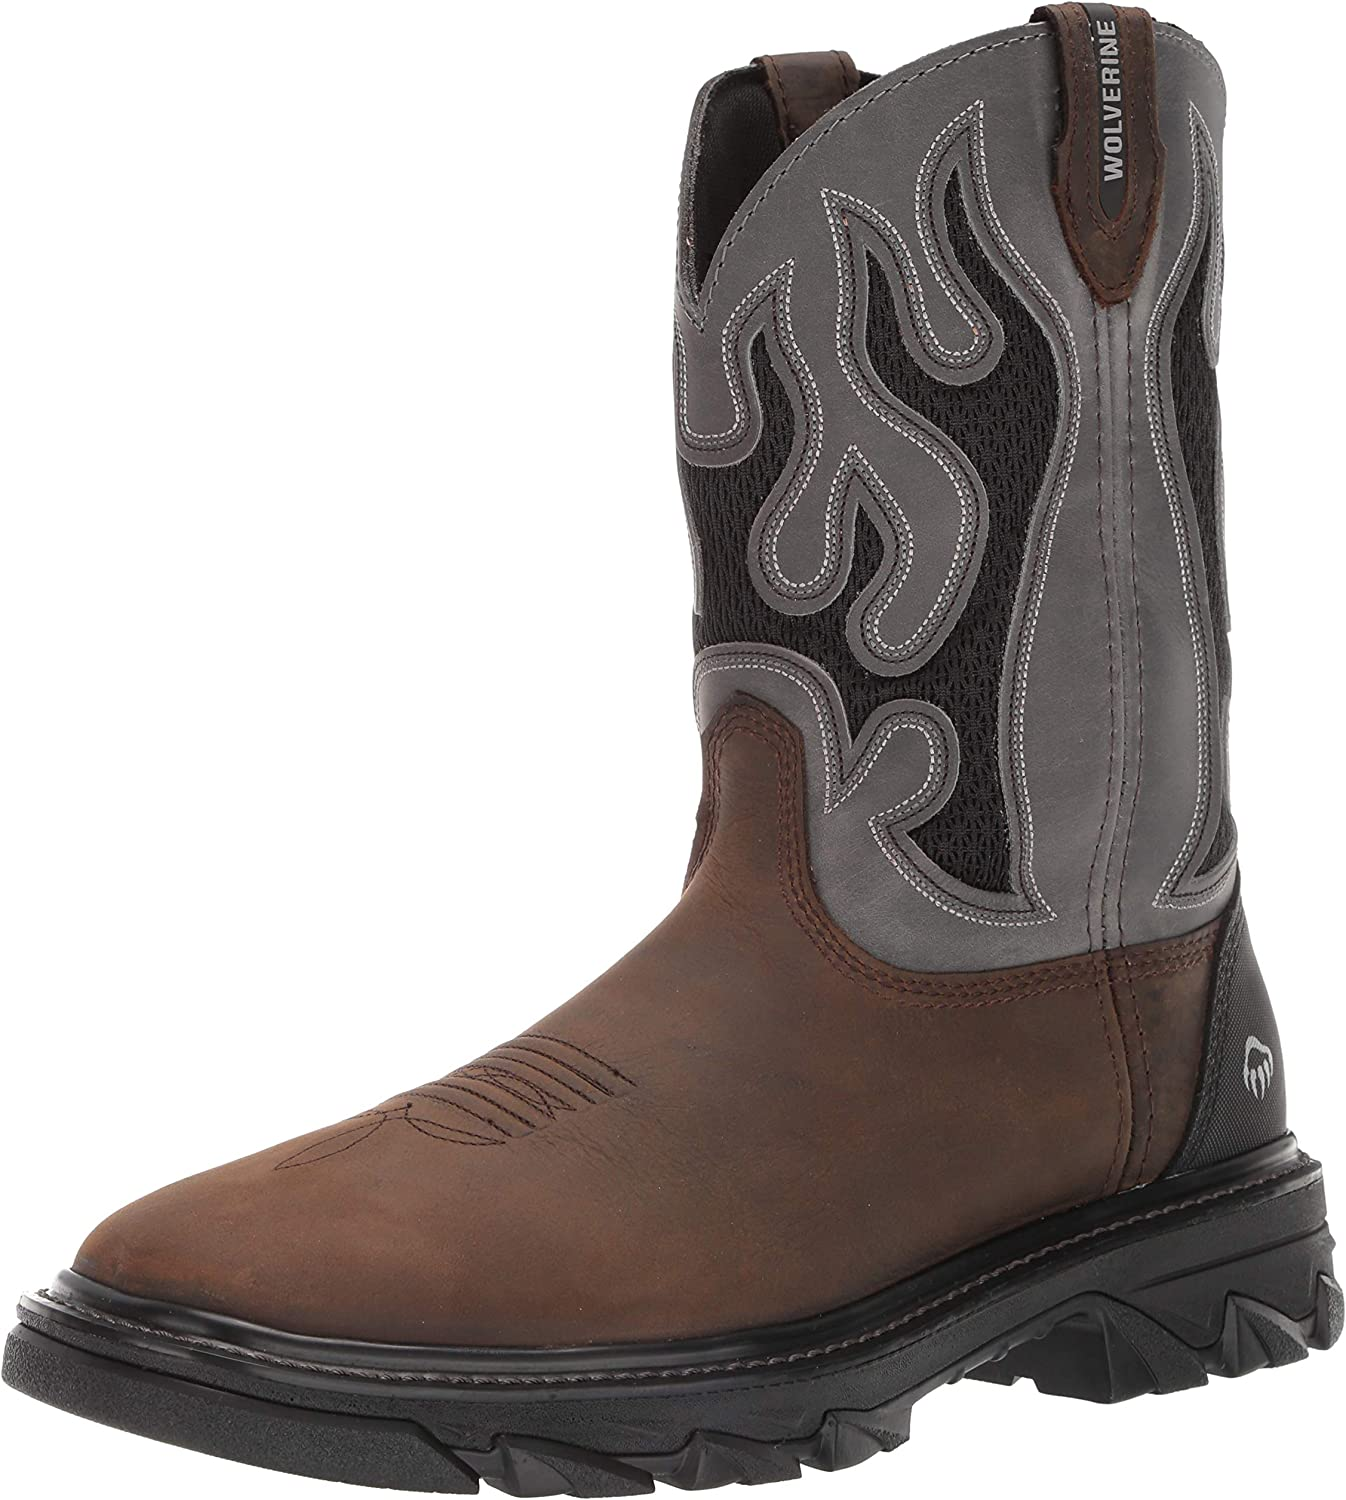 Wolverine Men's Ranch King Industrial shoes